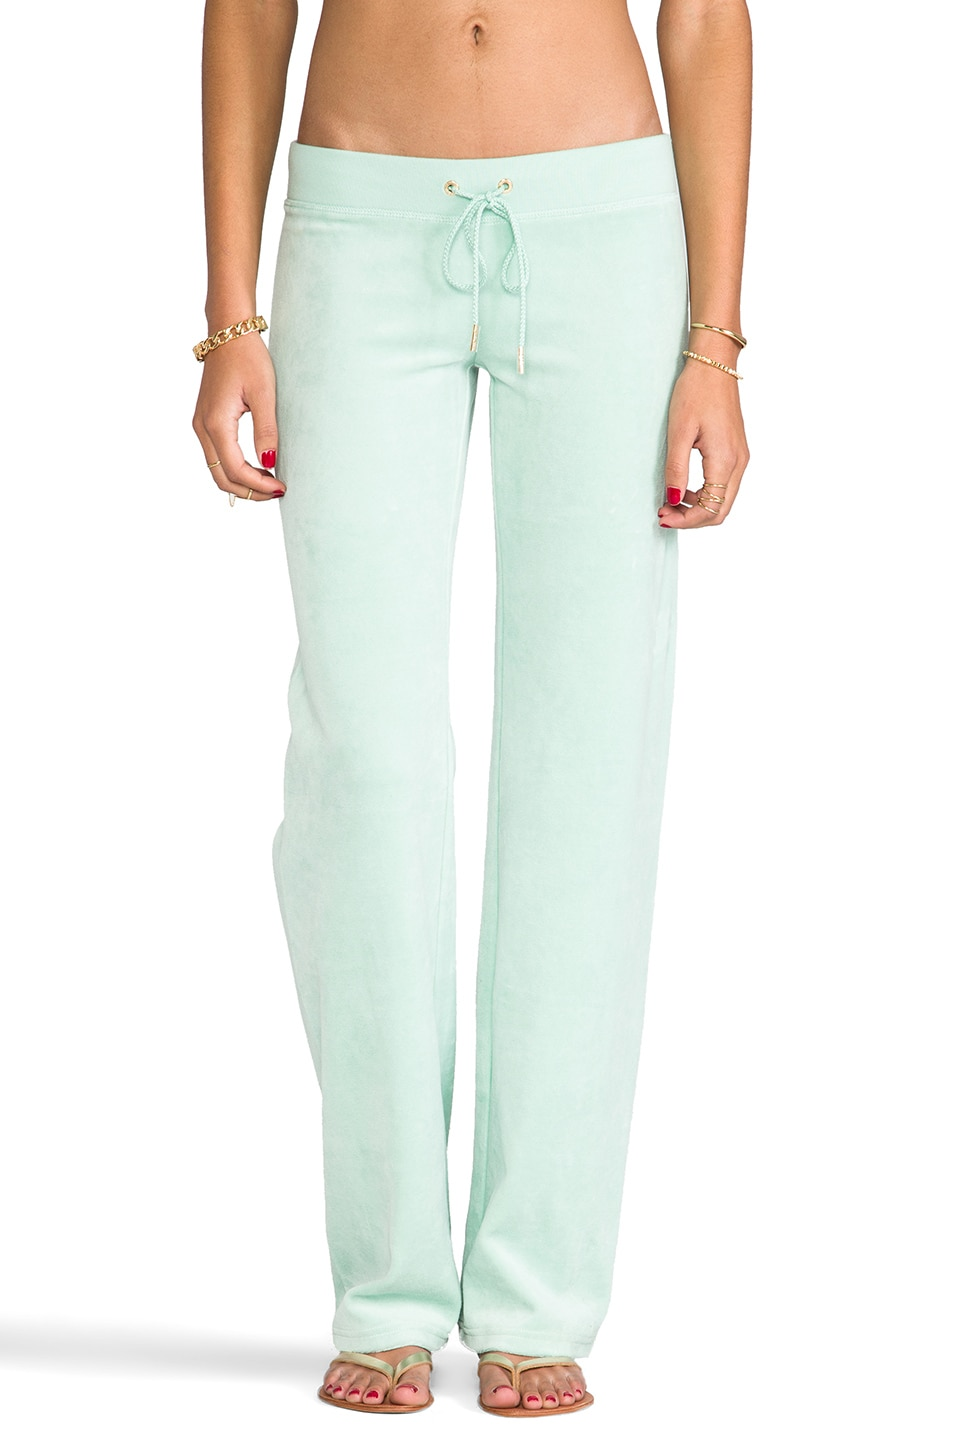 Juicy Couture Velour Original Leg Pant in Aqua Glass